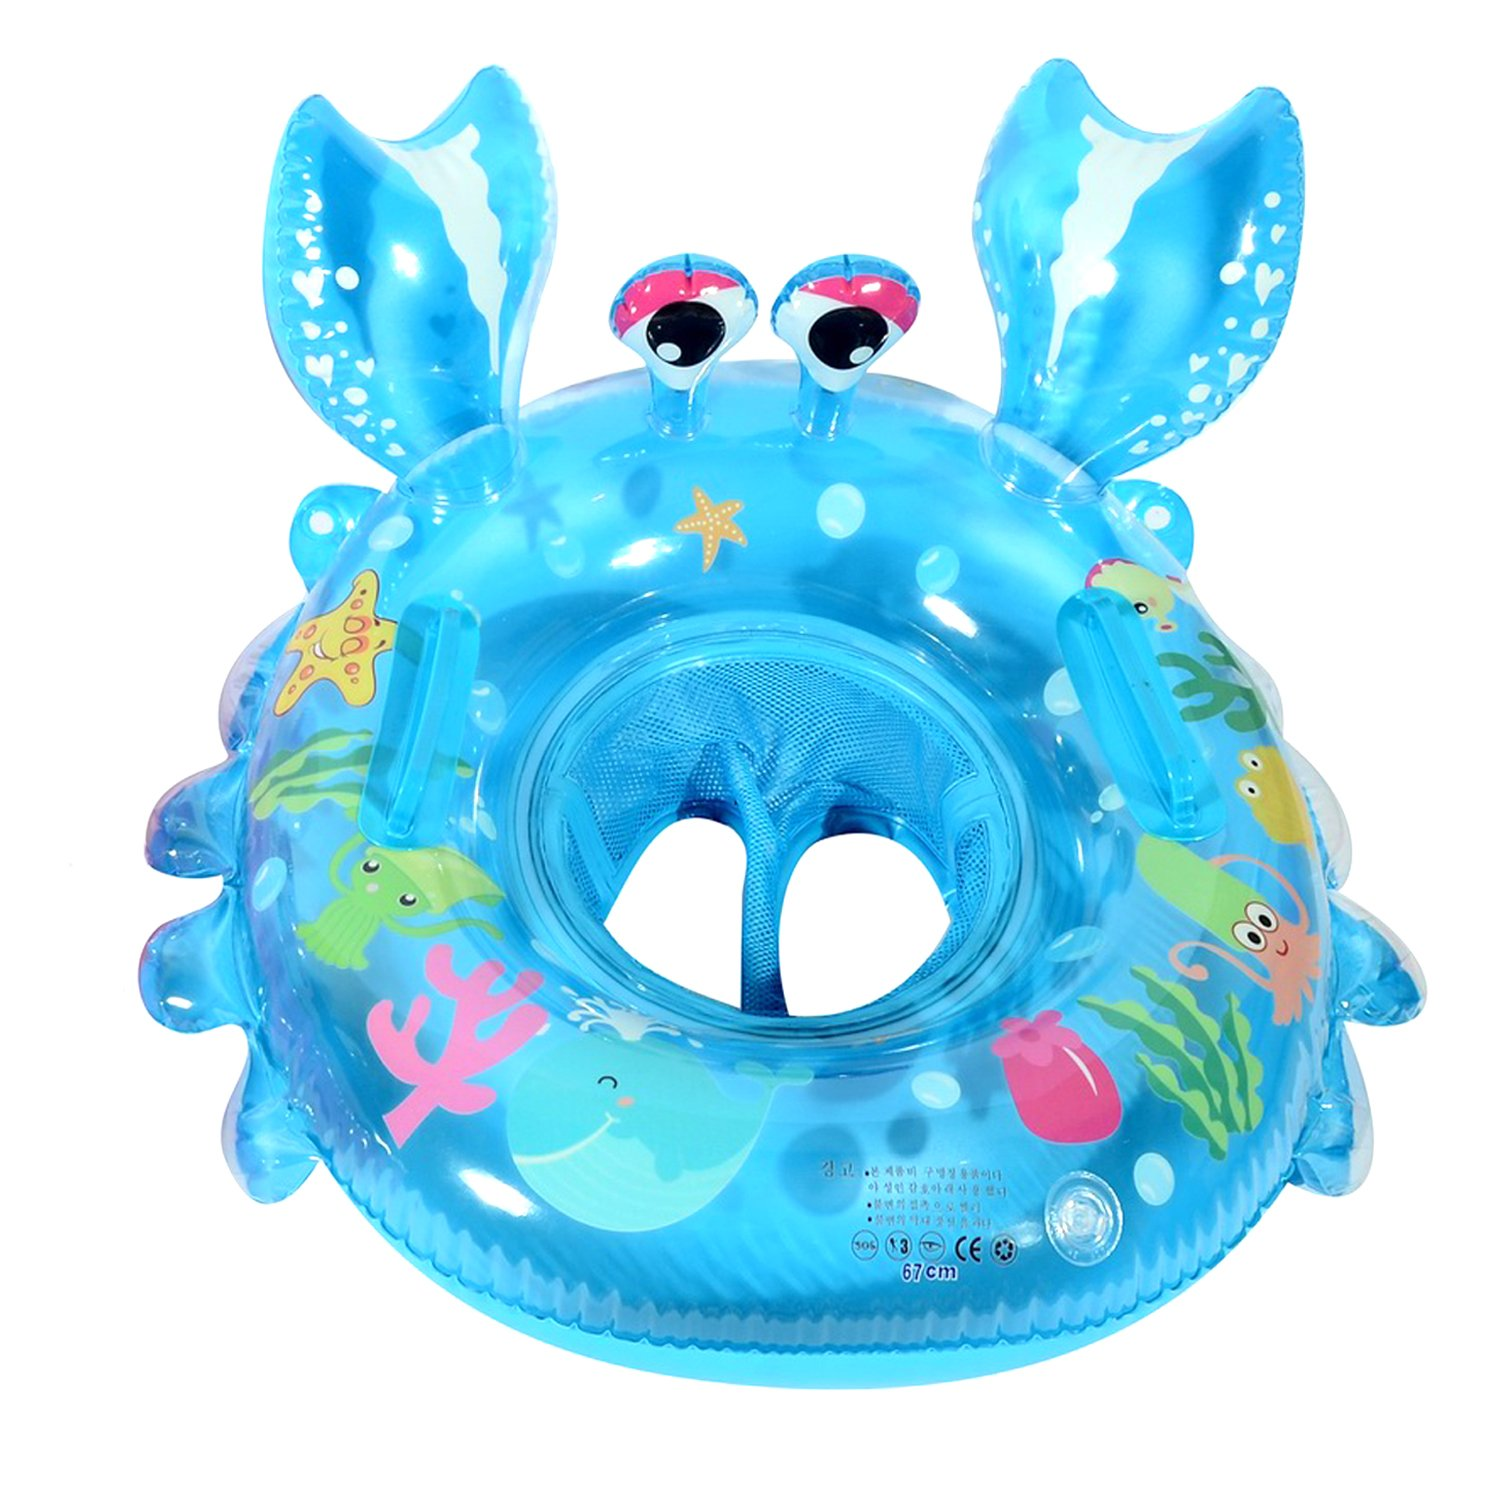 Amazon.com : UClever Baby Inflatable Pool Float Infant Crab Seat ...